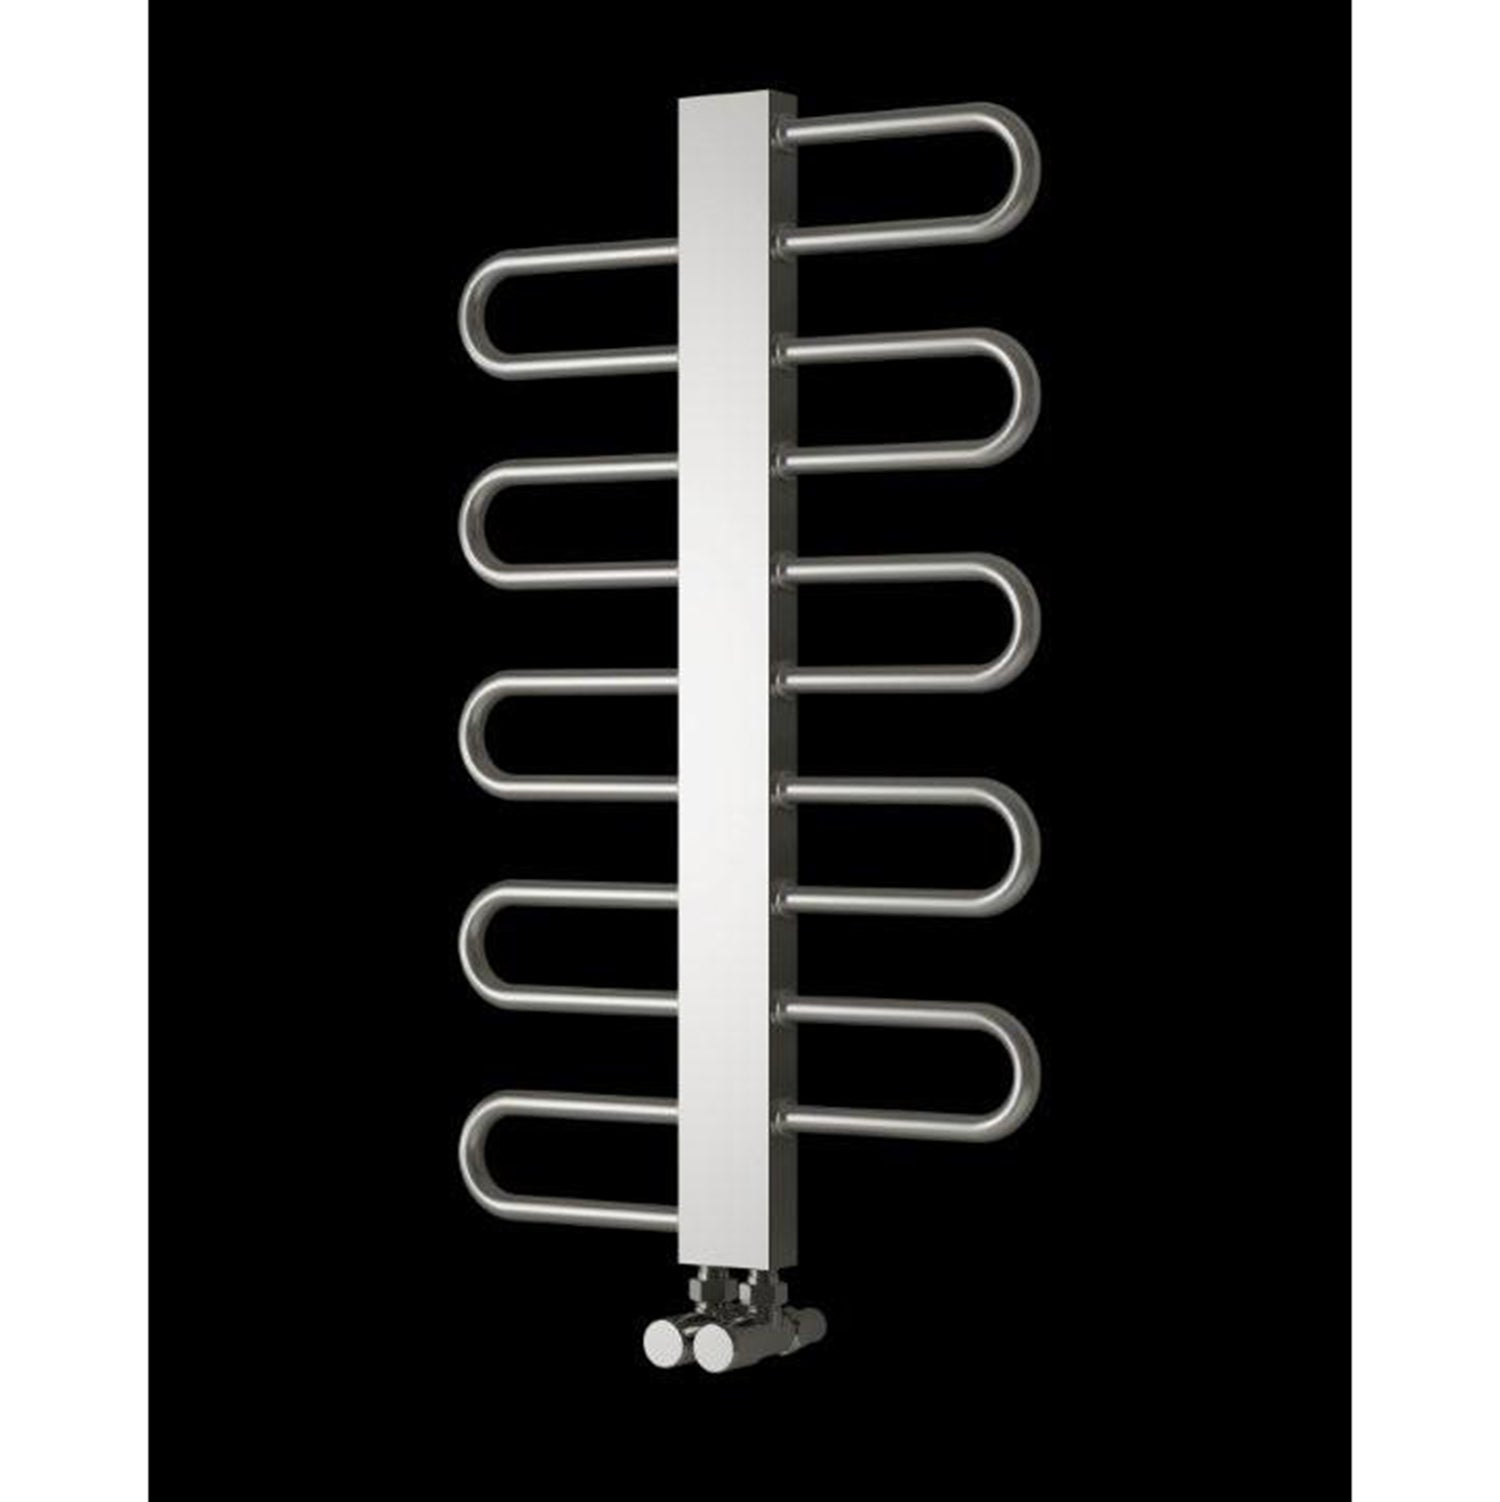 Dynamic designer towel radiator warmer